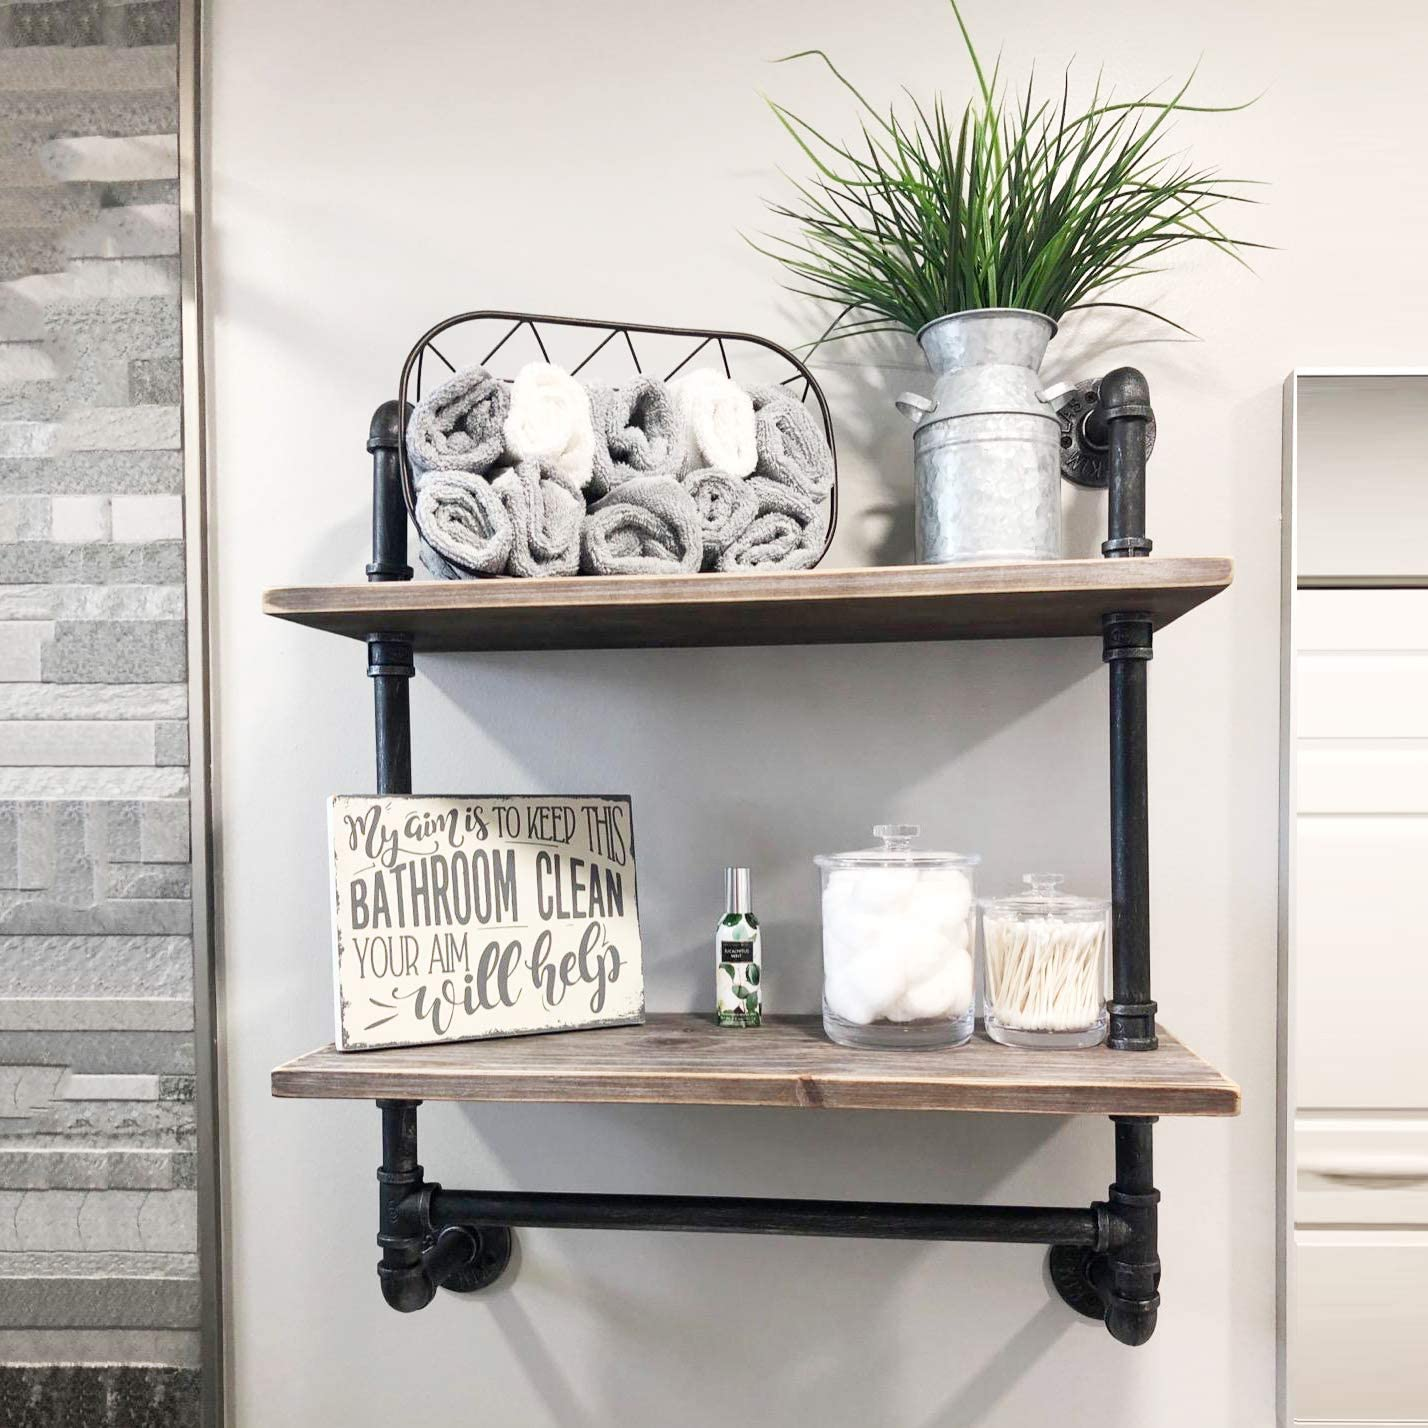 Amazon Com Ucared 2 Tier Vintage Industrial Pipe Bathroom Shelves Wall Mounted 24 Rustic Wall Shelf With Bath Towel Bars Farmhouse Towel Rack Metal Wooden Floating Shelves Over The Toilet Storage Shelf Kitchen Dining